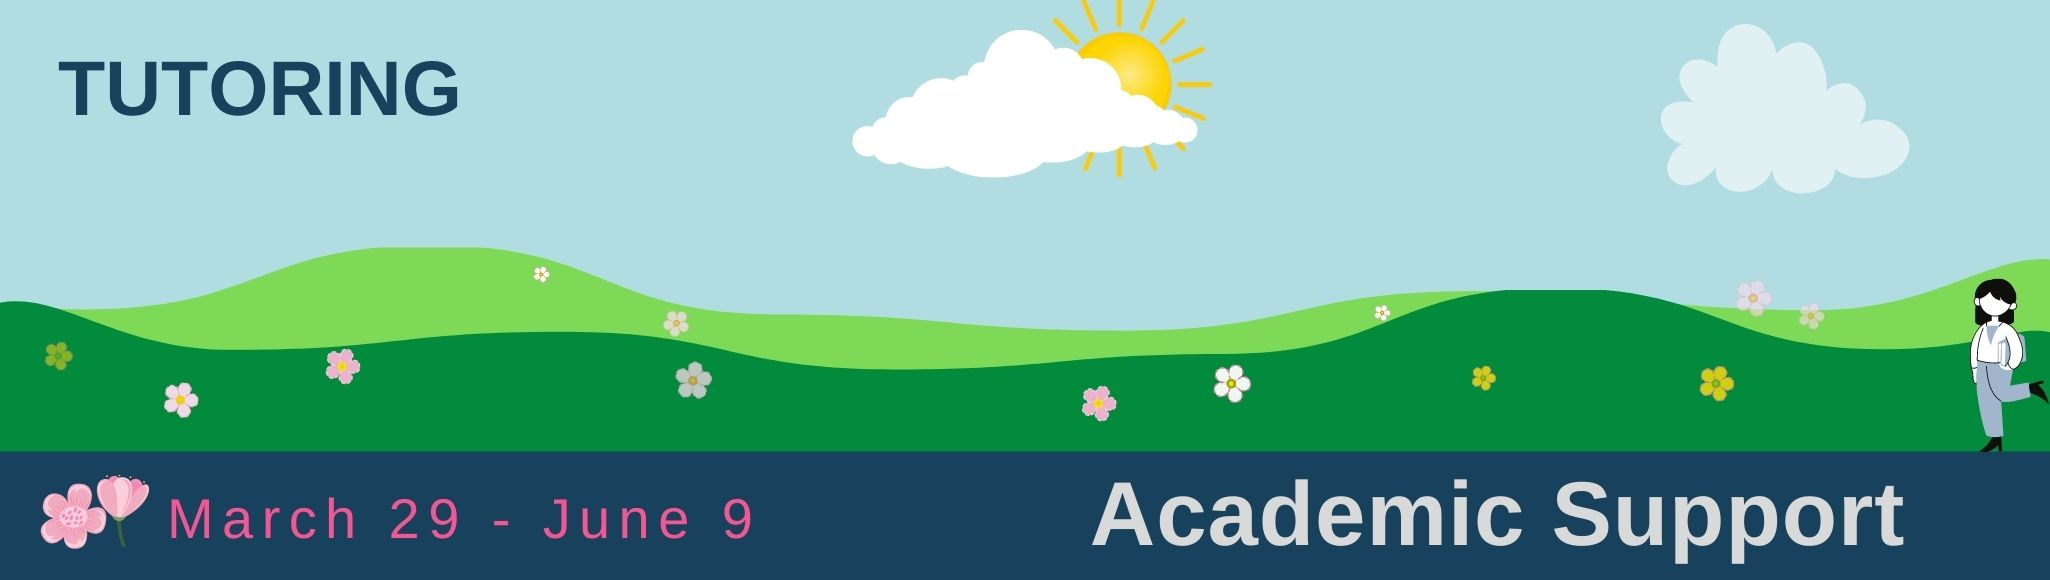 Picture: spring landscape with green fields, small flowers, and the sun peeking out from behind a fluffy cloud. Words: Tutoring, March 29-June 9. Academic Support